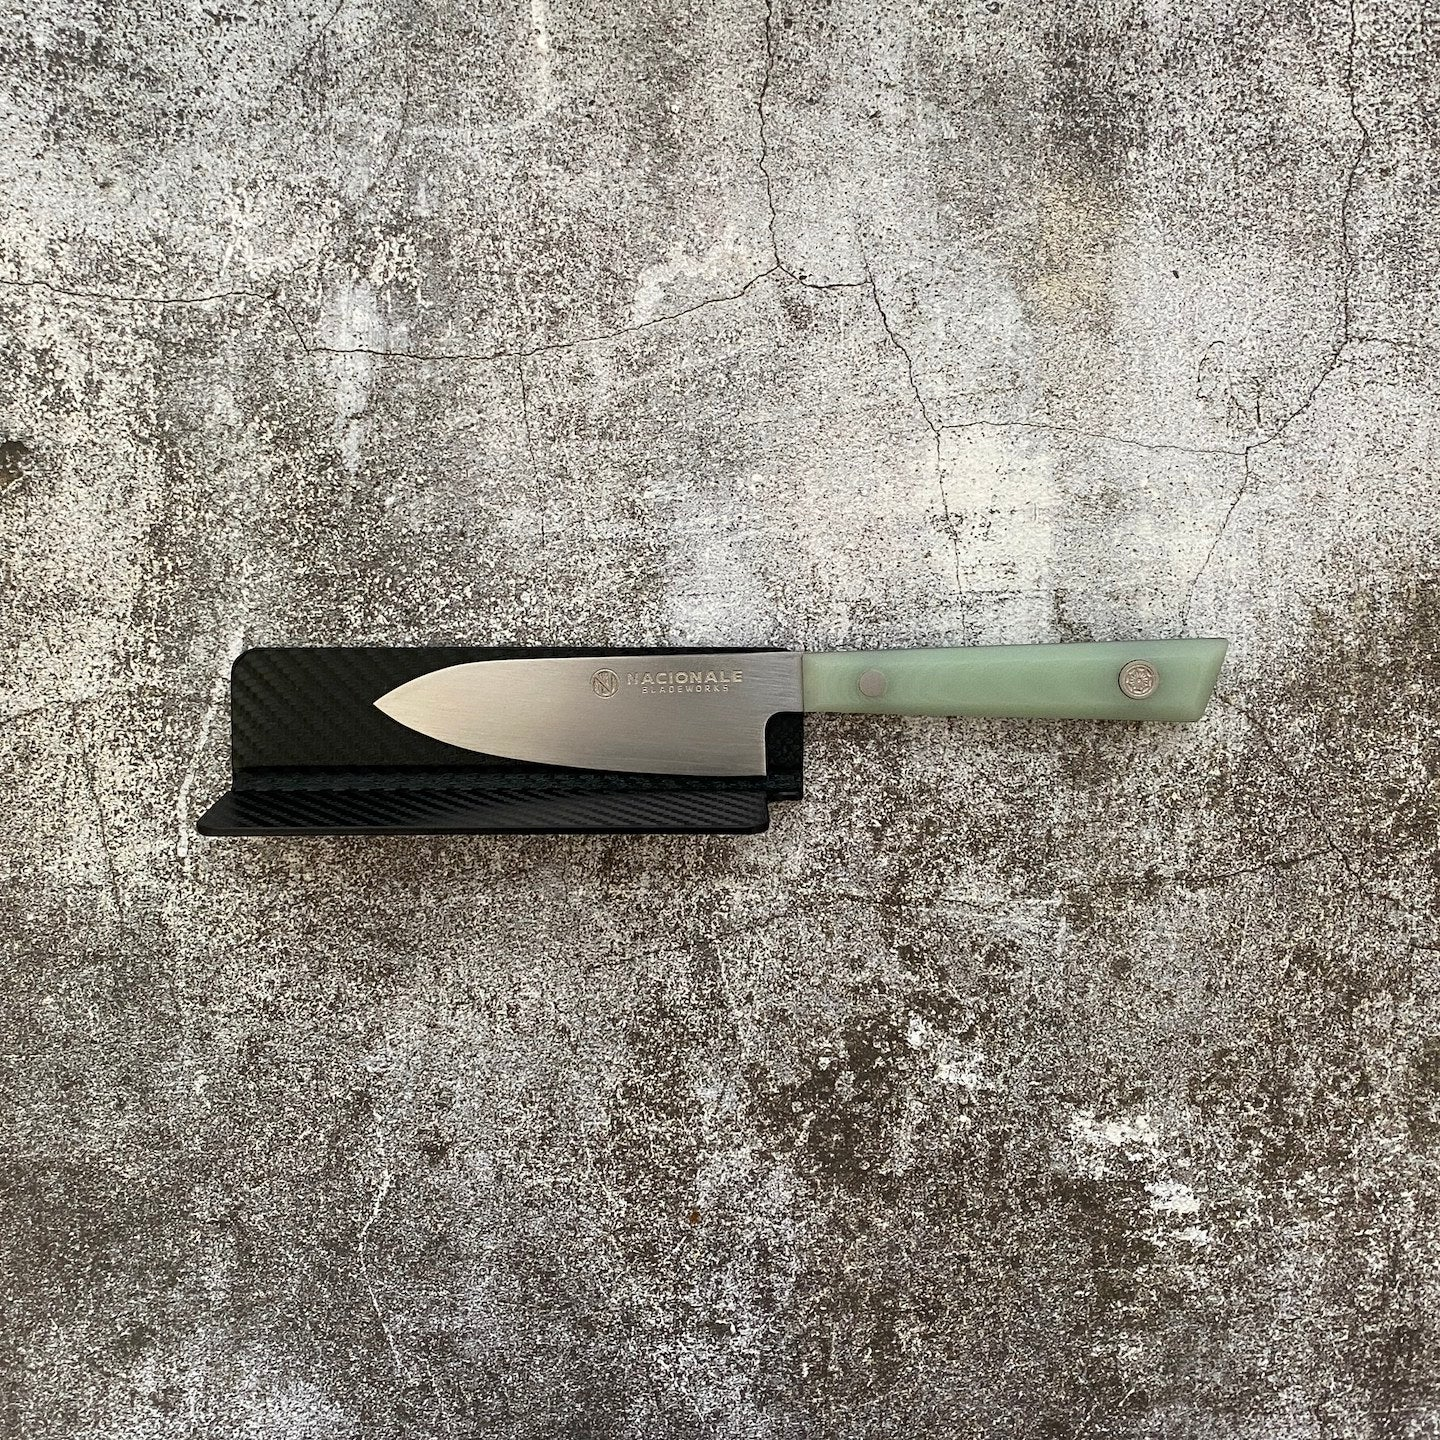 145mm Magnetic Knife Guard. Denim Blue PU